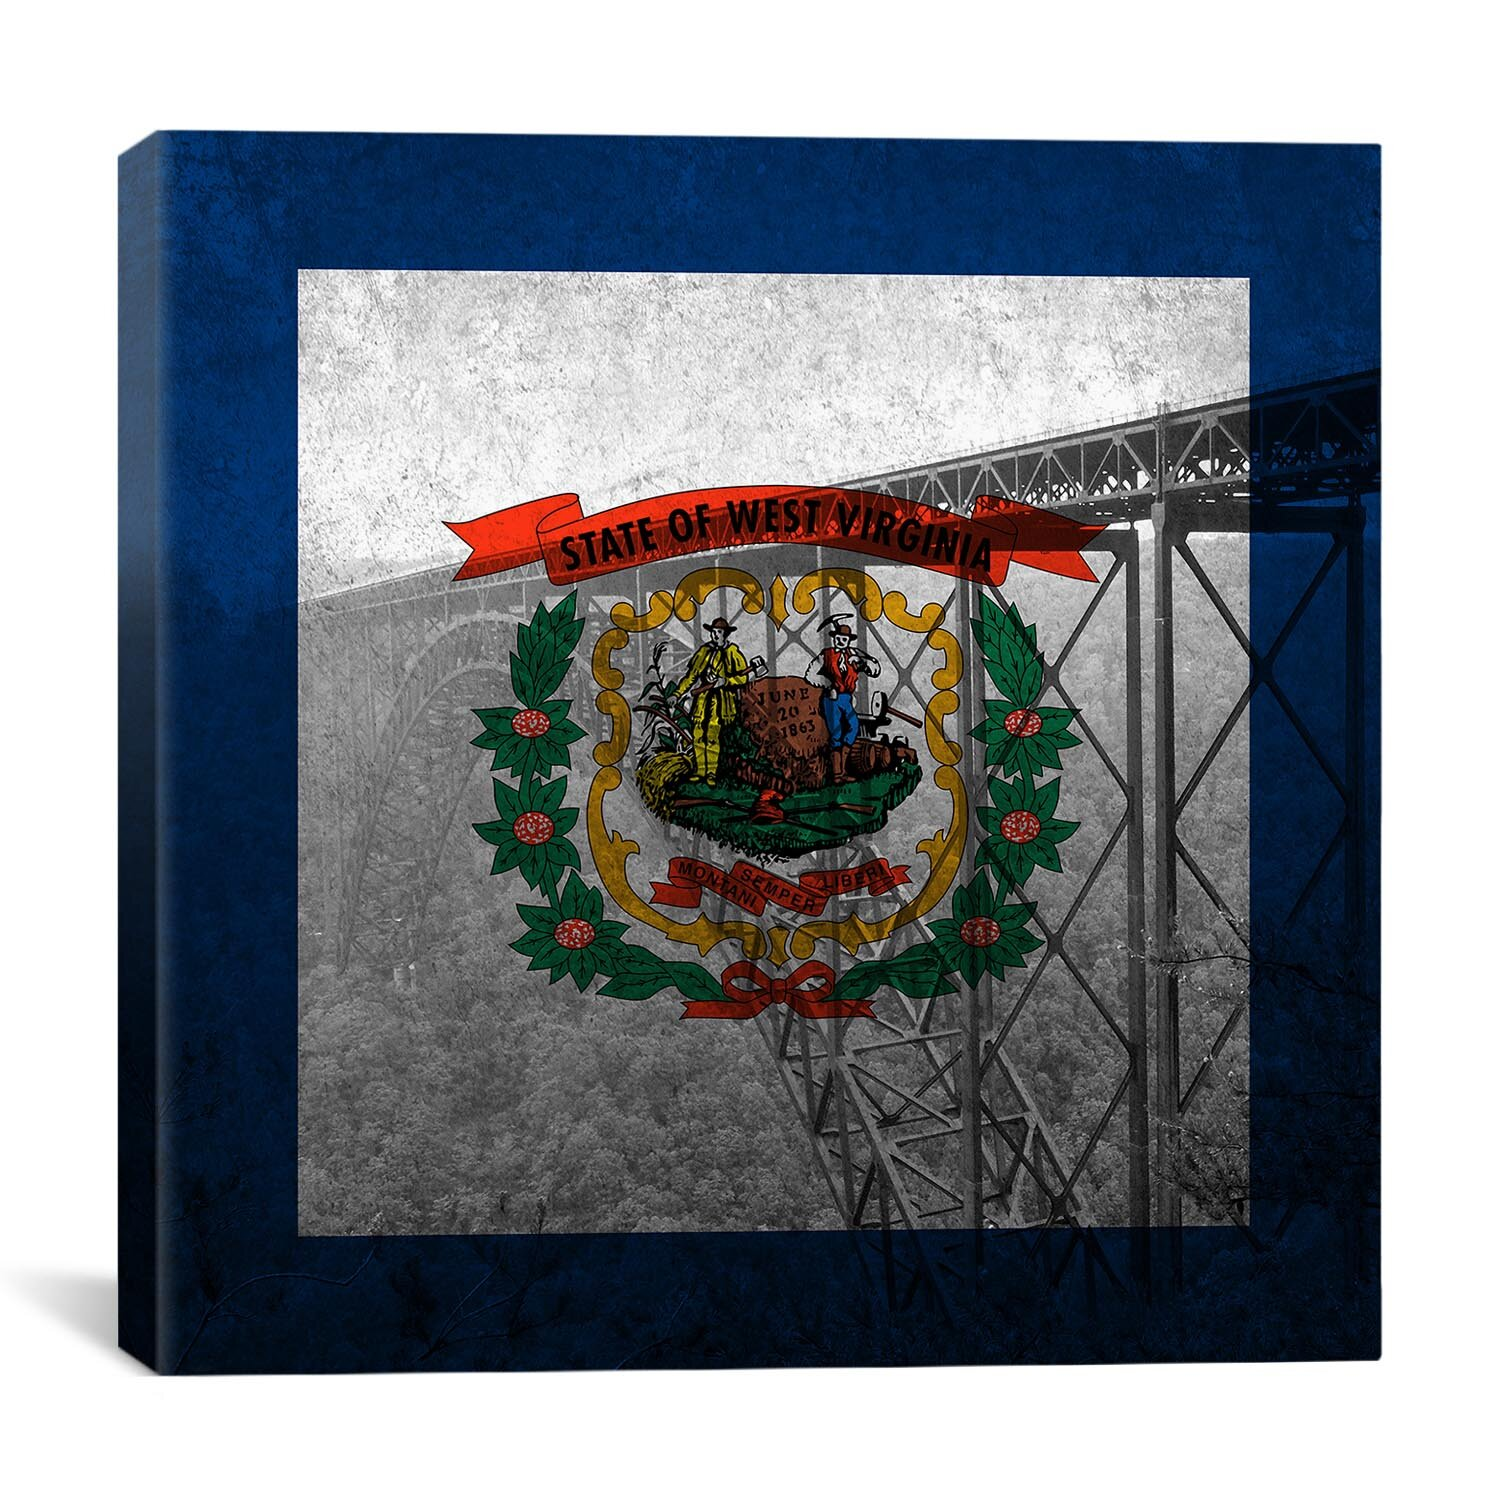 Winston Porter Flags West Virginia New River Gorge Bridge With Grunge Graphic Art On Wrapped Canvas Wayfair